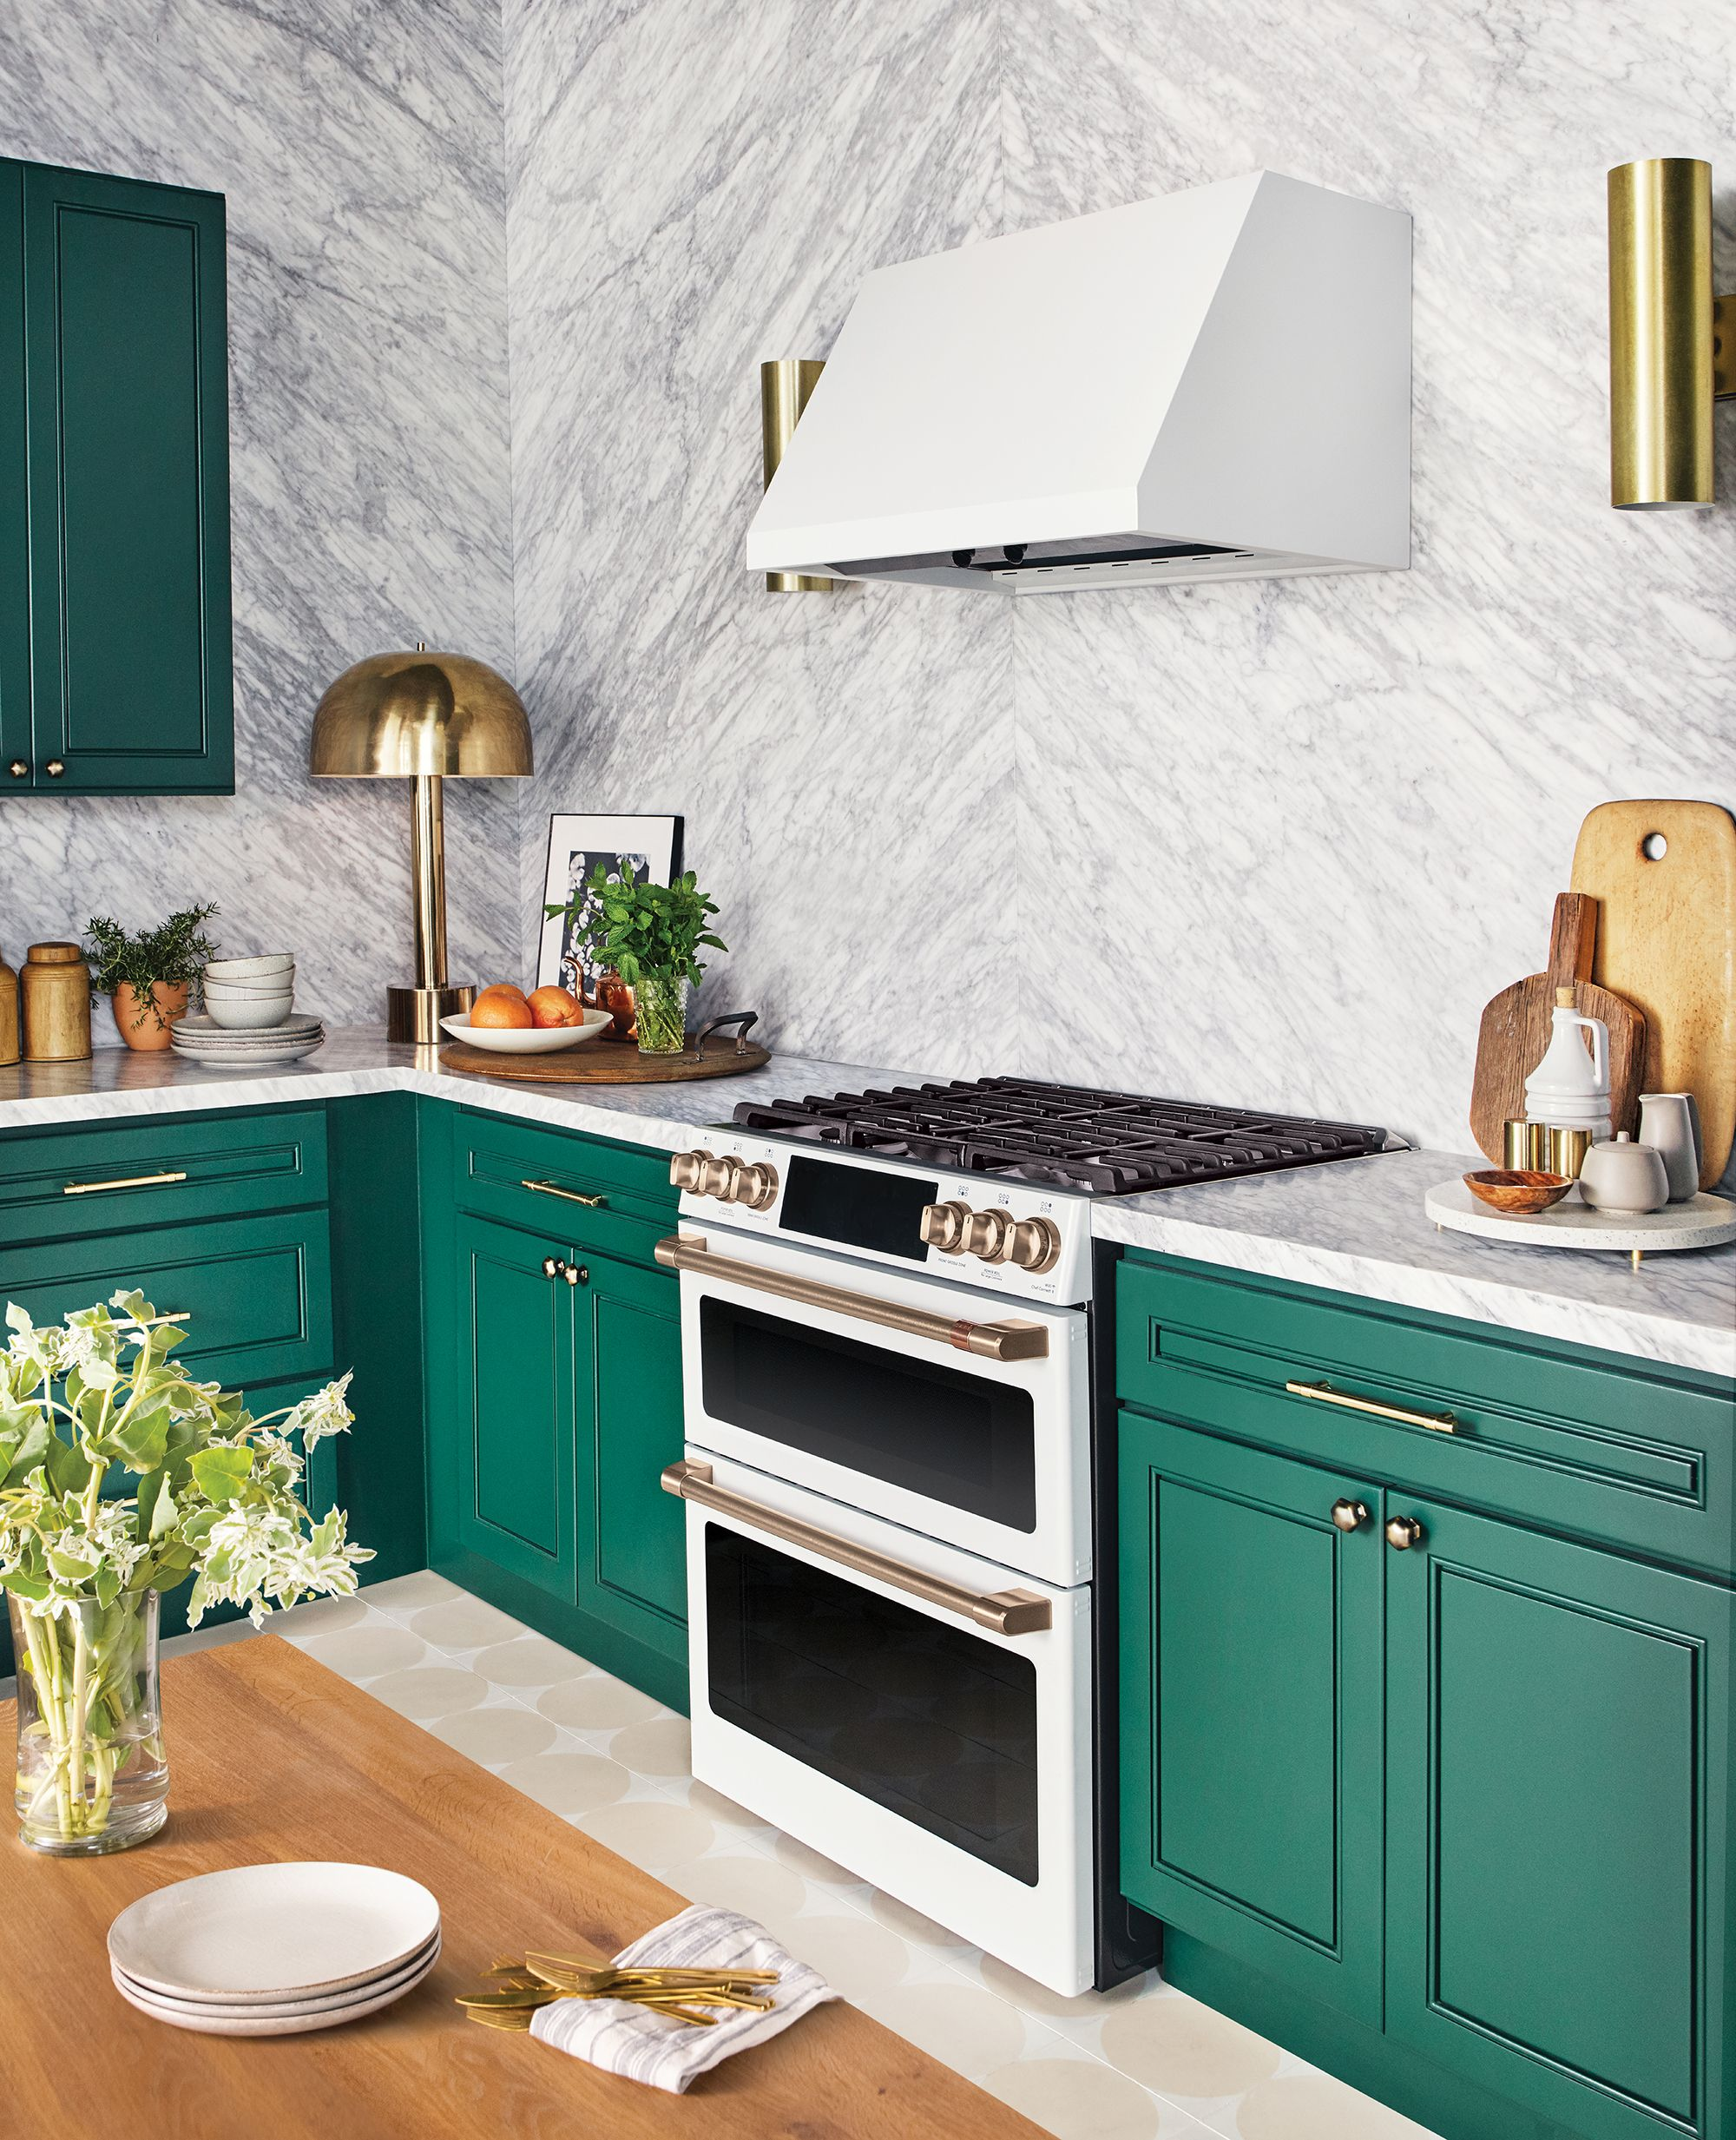 Best Stylish Cooking That Performs Kitchen Remodel Kitchen 400 x 300